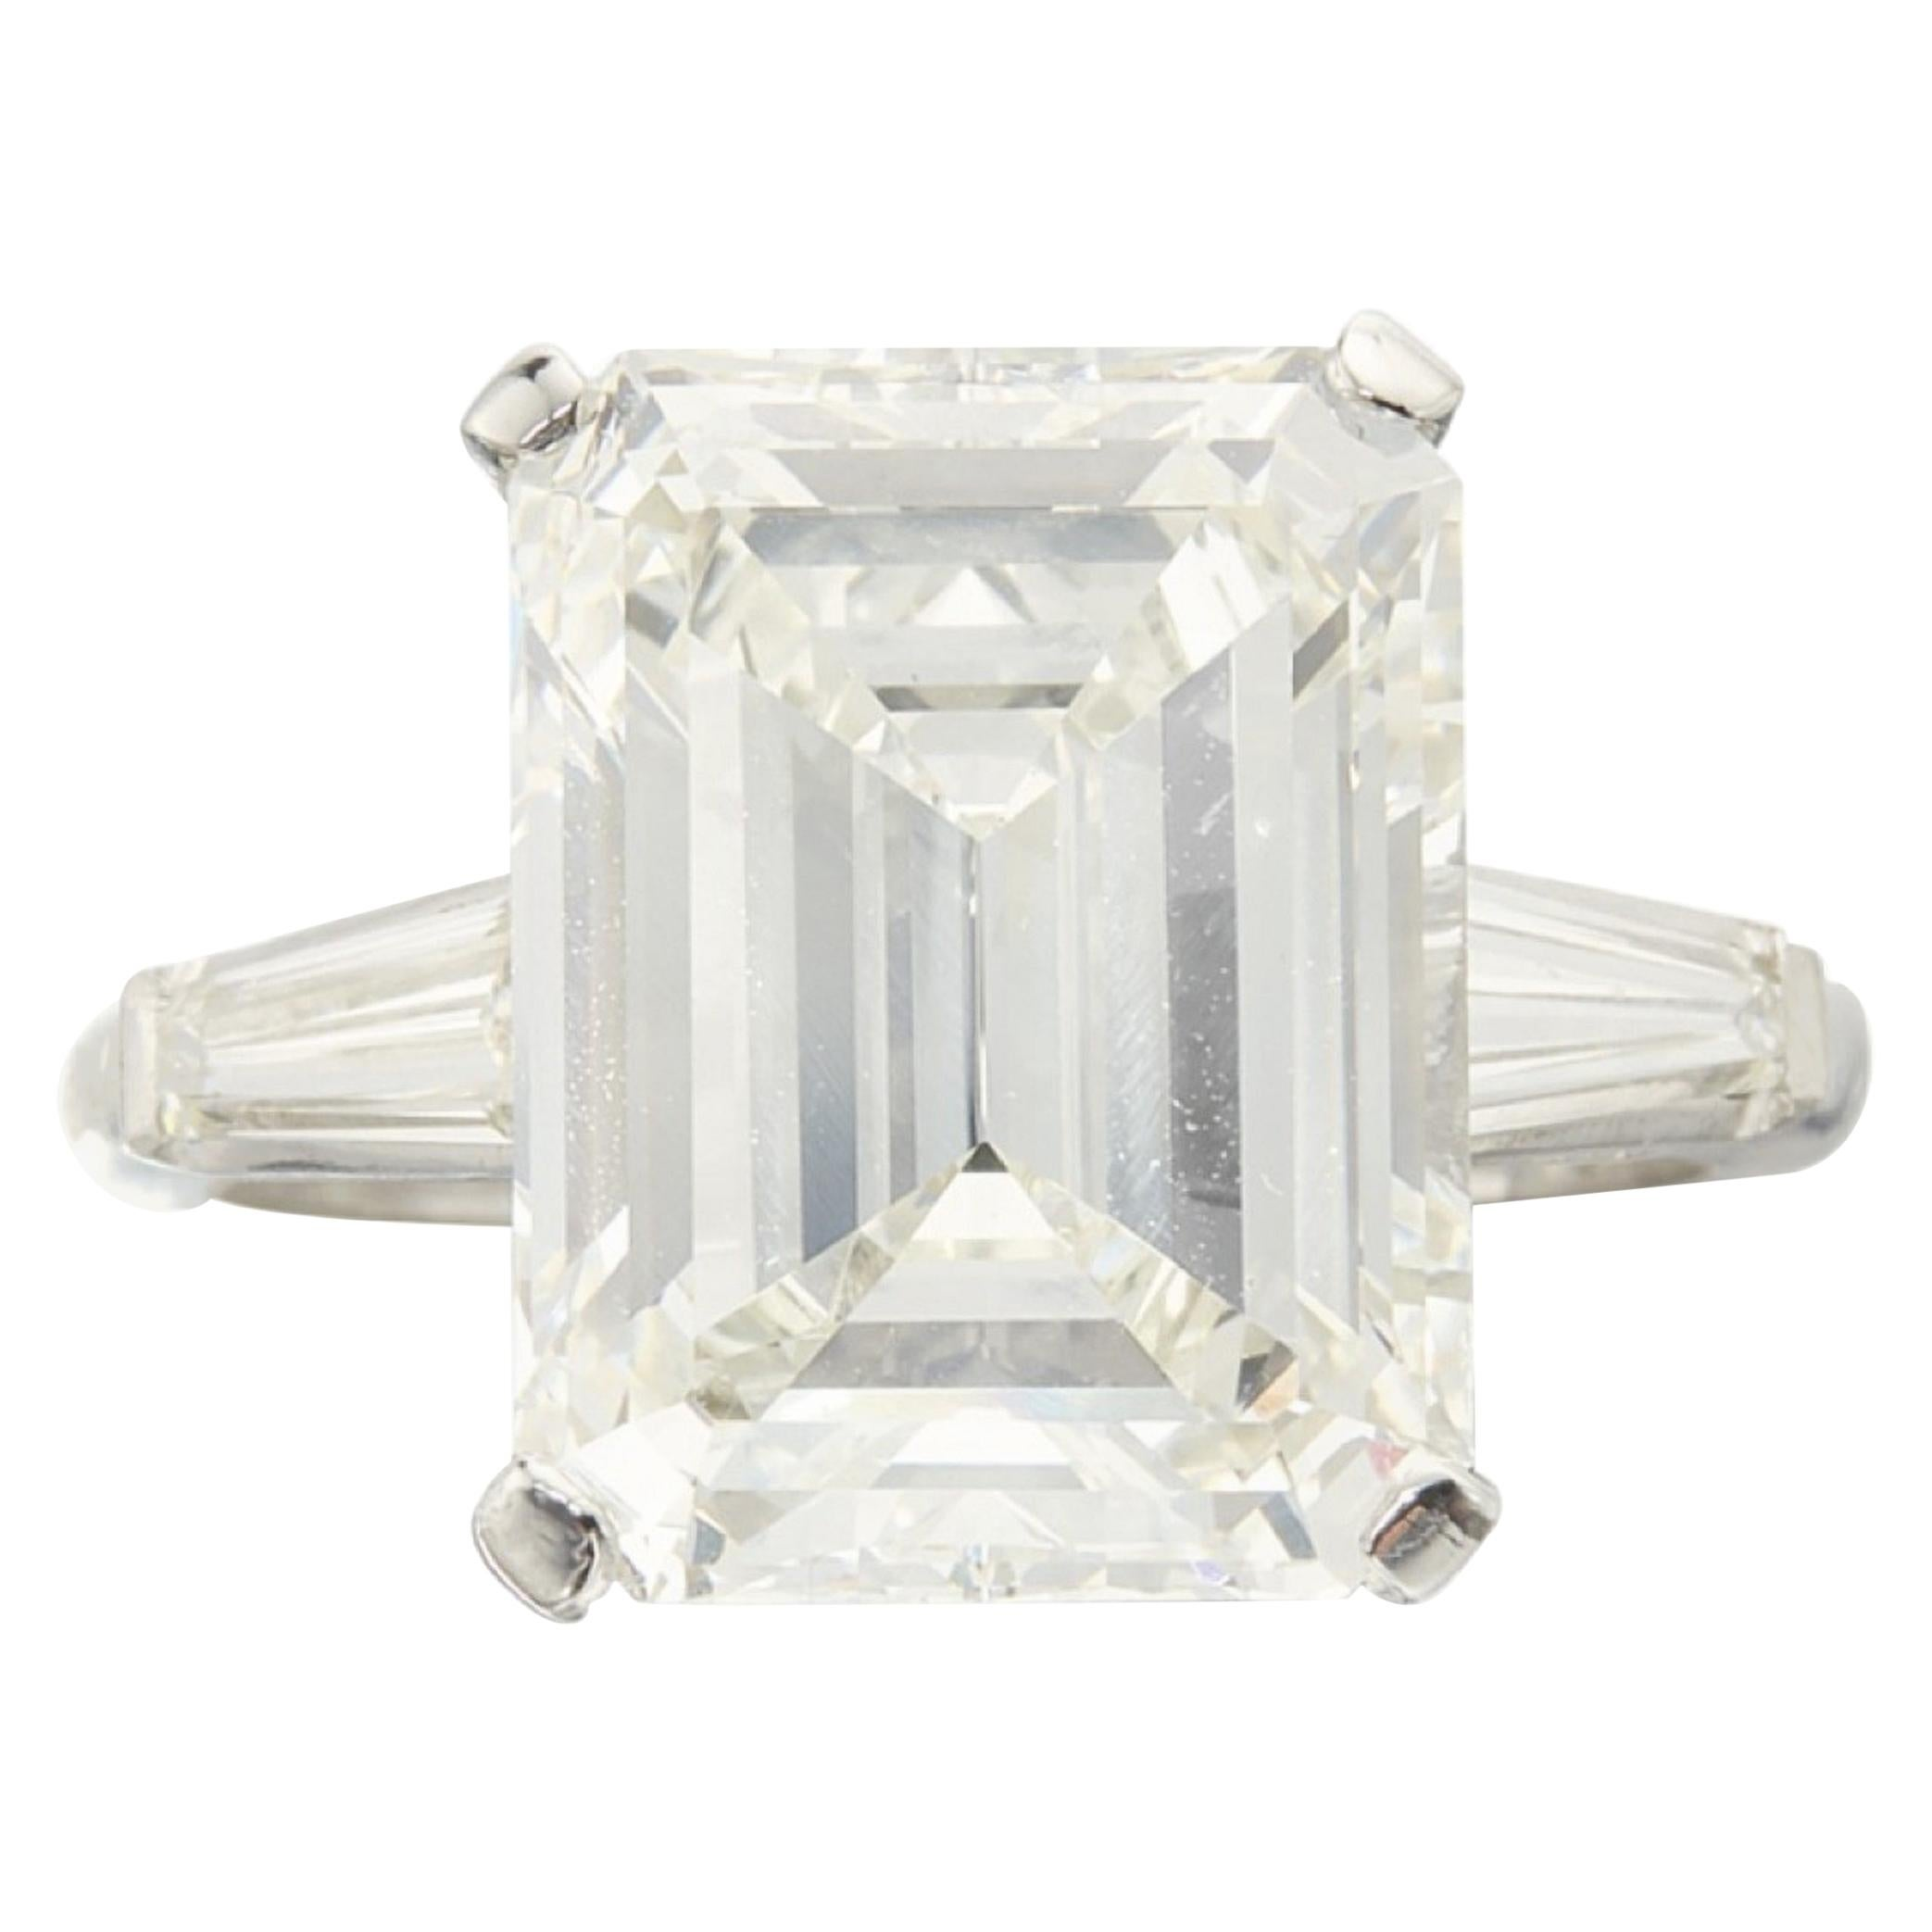 Exceptional GIA Certified 7 Carat Emerald Cut Diamond Ring